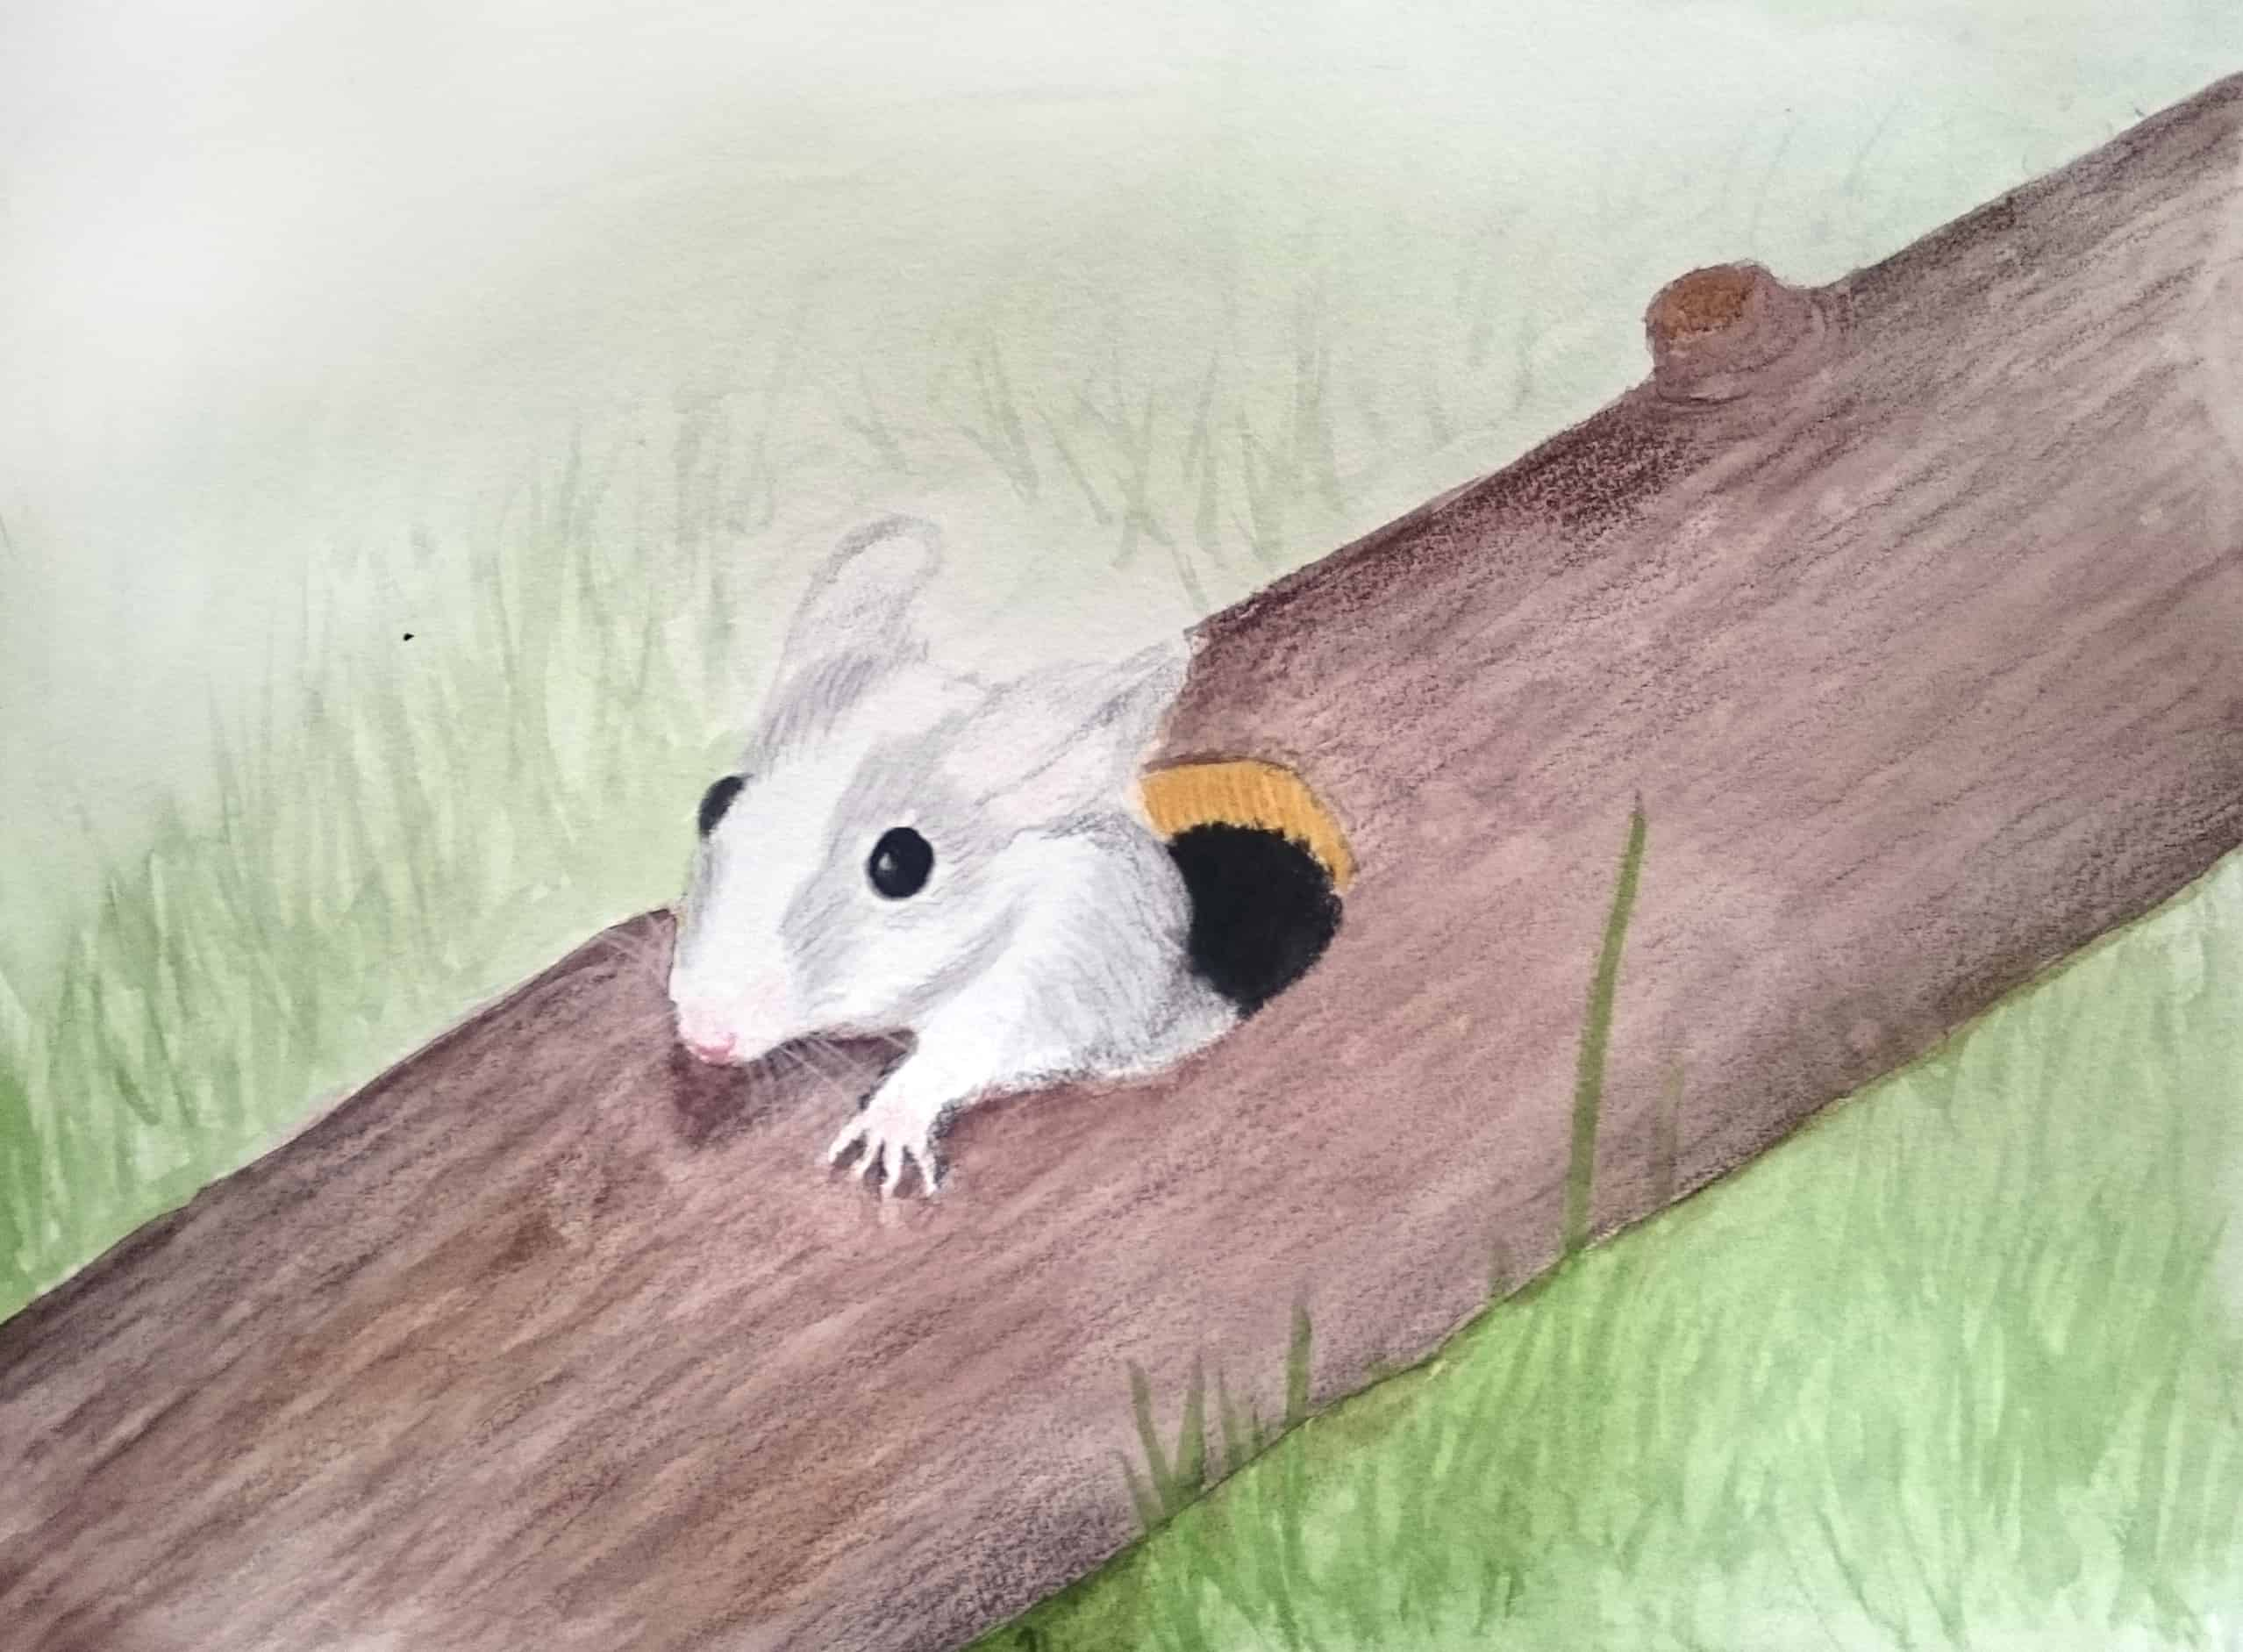 A watercolour and colored pencil painting of a grey and white mouse coming out of a hole in a log by Linda Ursin